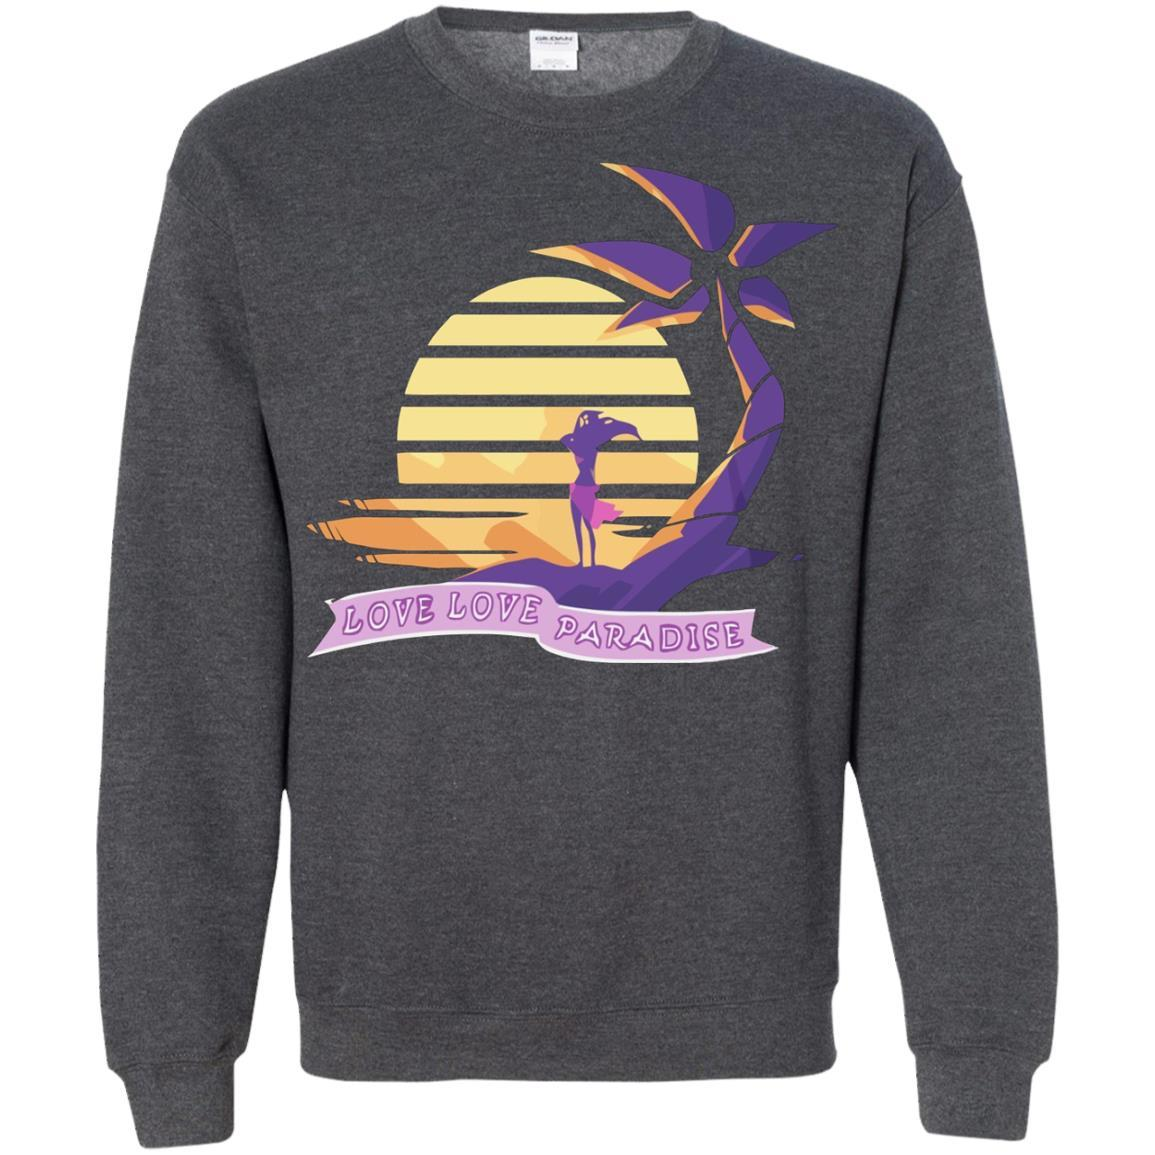 Aphmau Love - Love Paradise - Pullover Sweatshirt Style / Color / Size